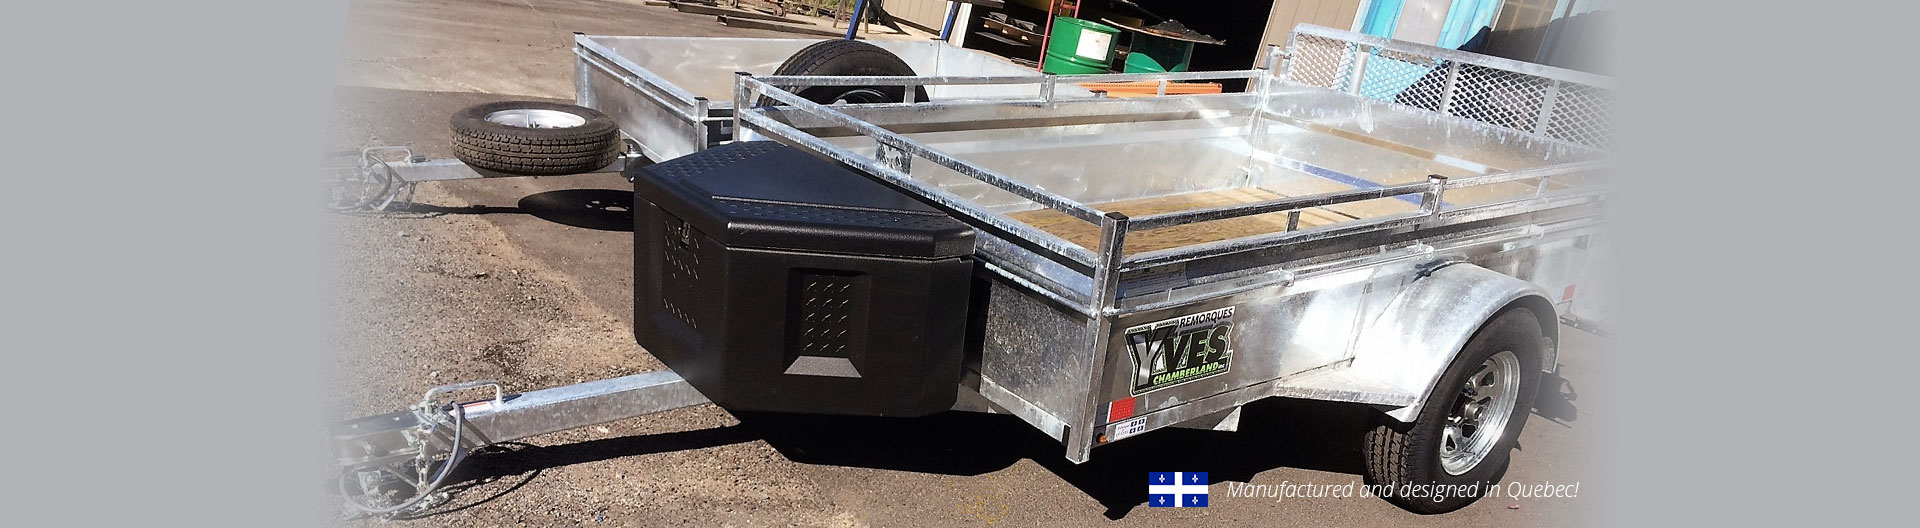 Trailers Laurentians trailers PAC